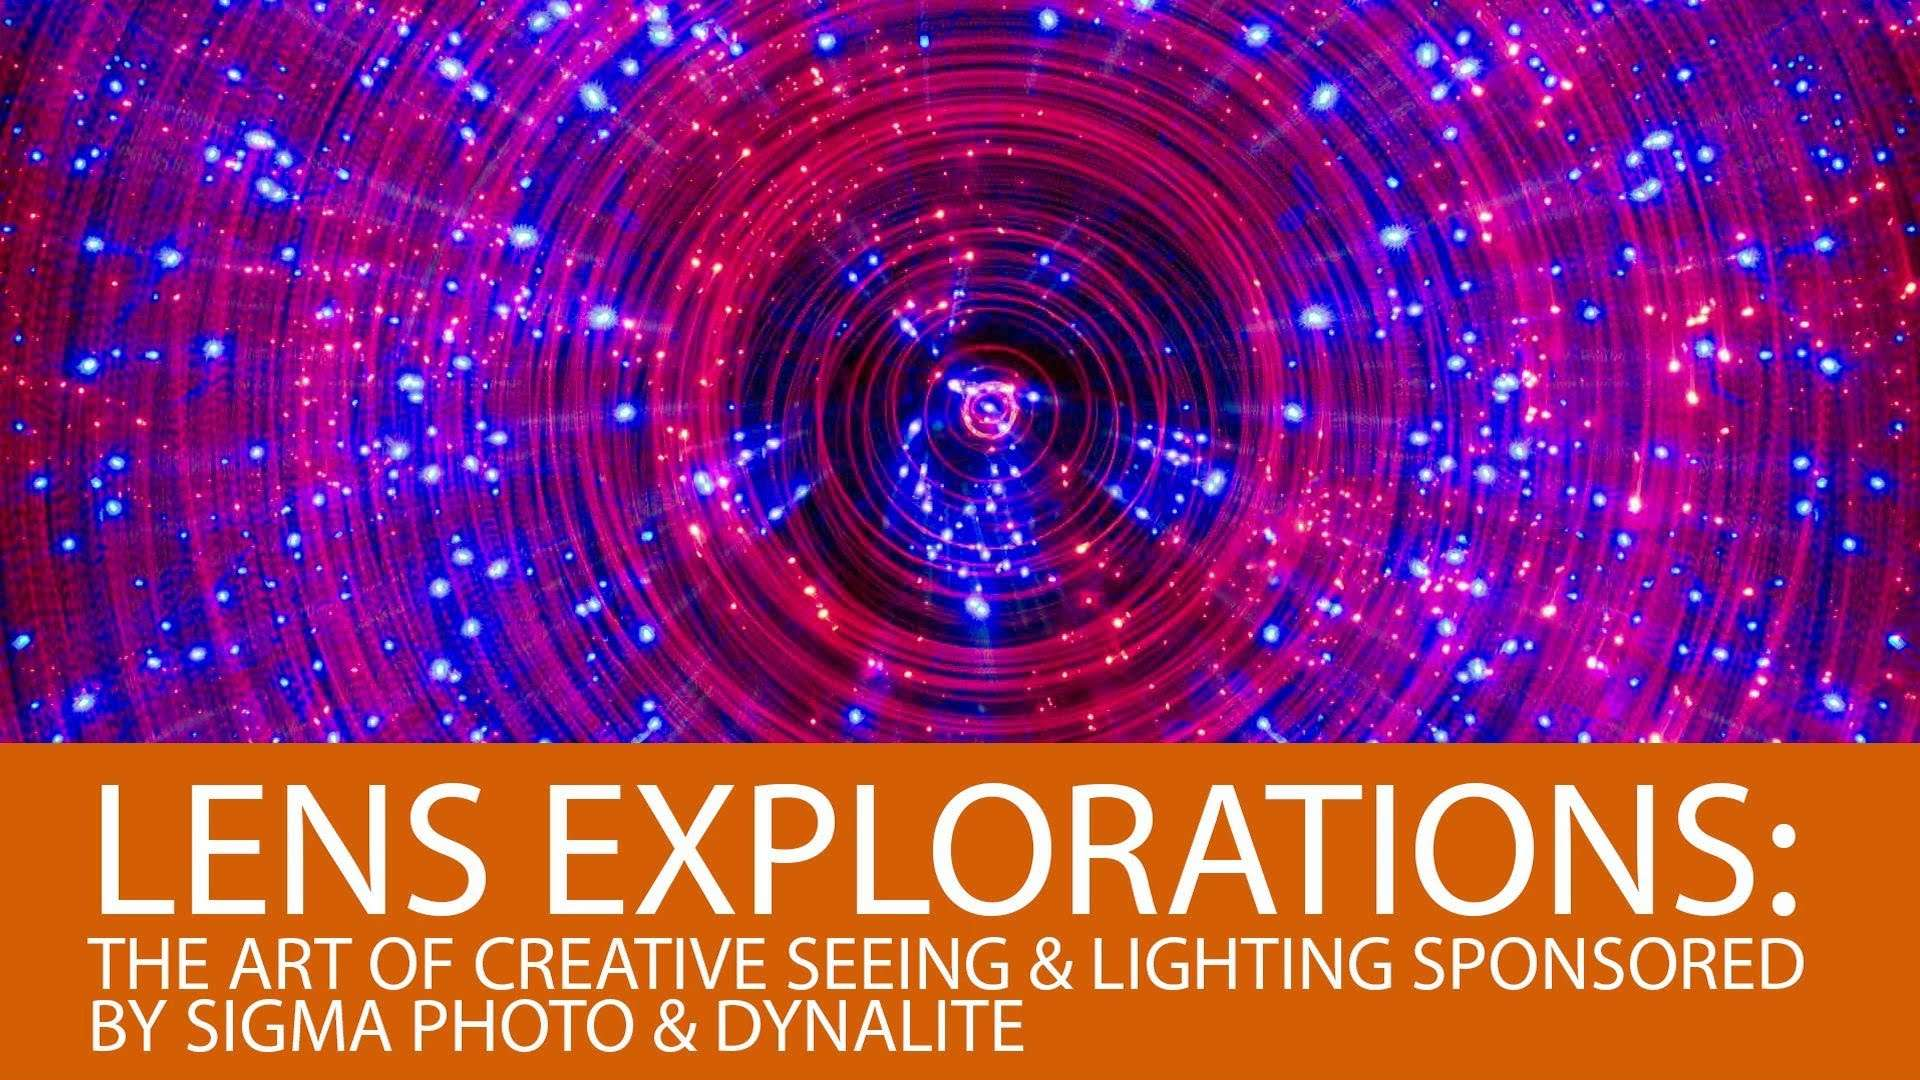 Lens Explorations Art Creative Seeing Lighting Youtube